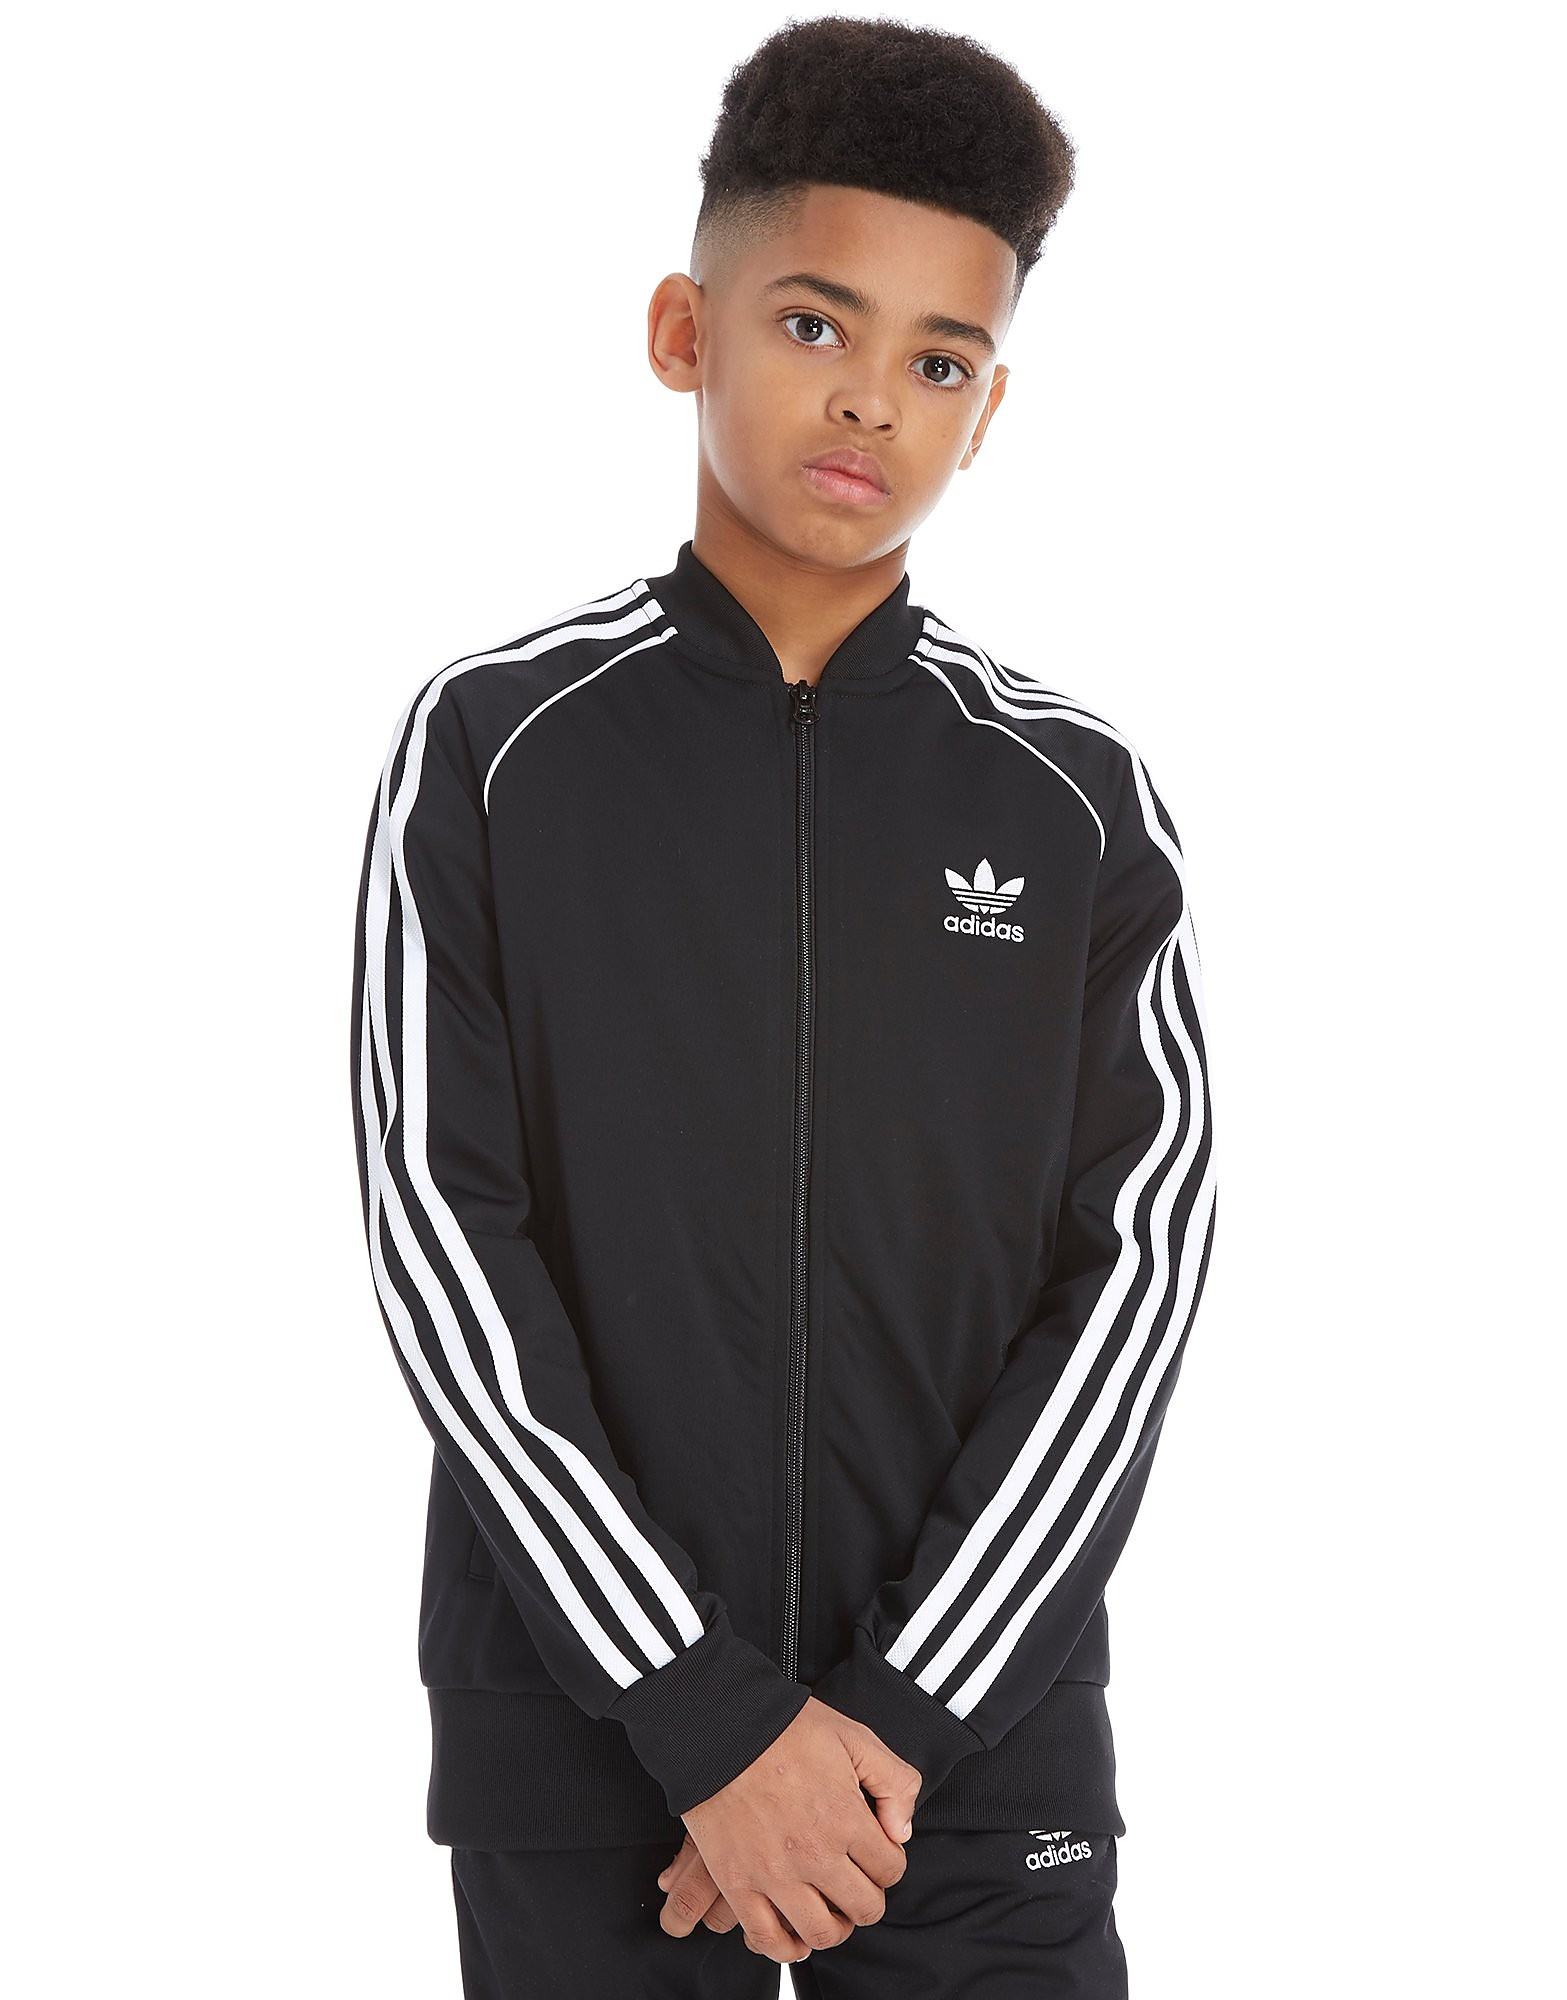 adidas Originals chaqueta de chándal Superstar júnior